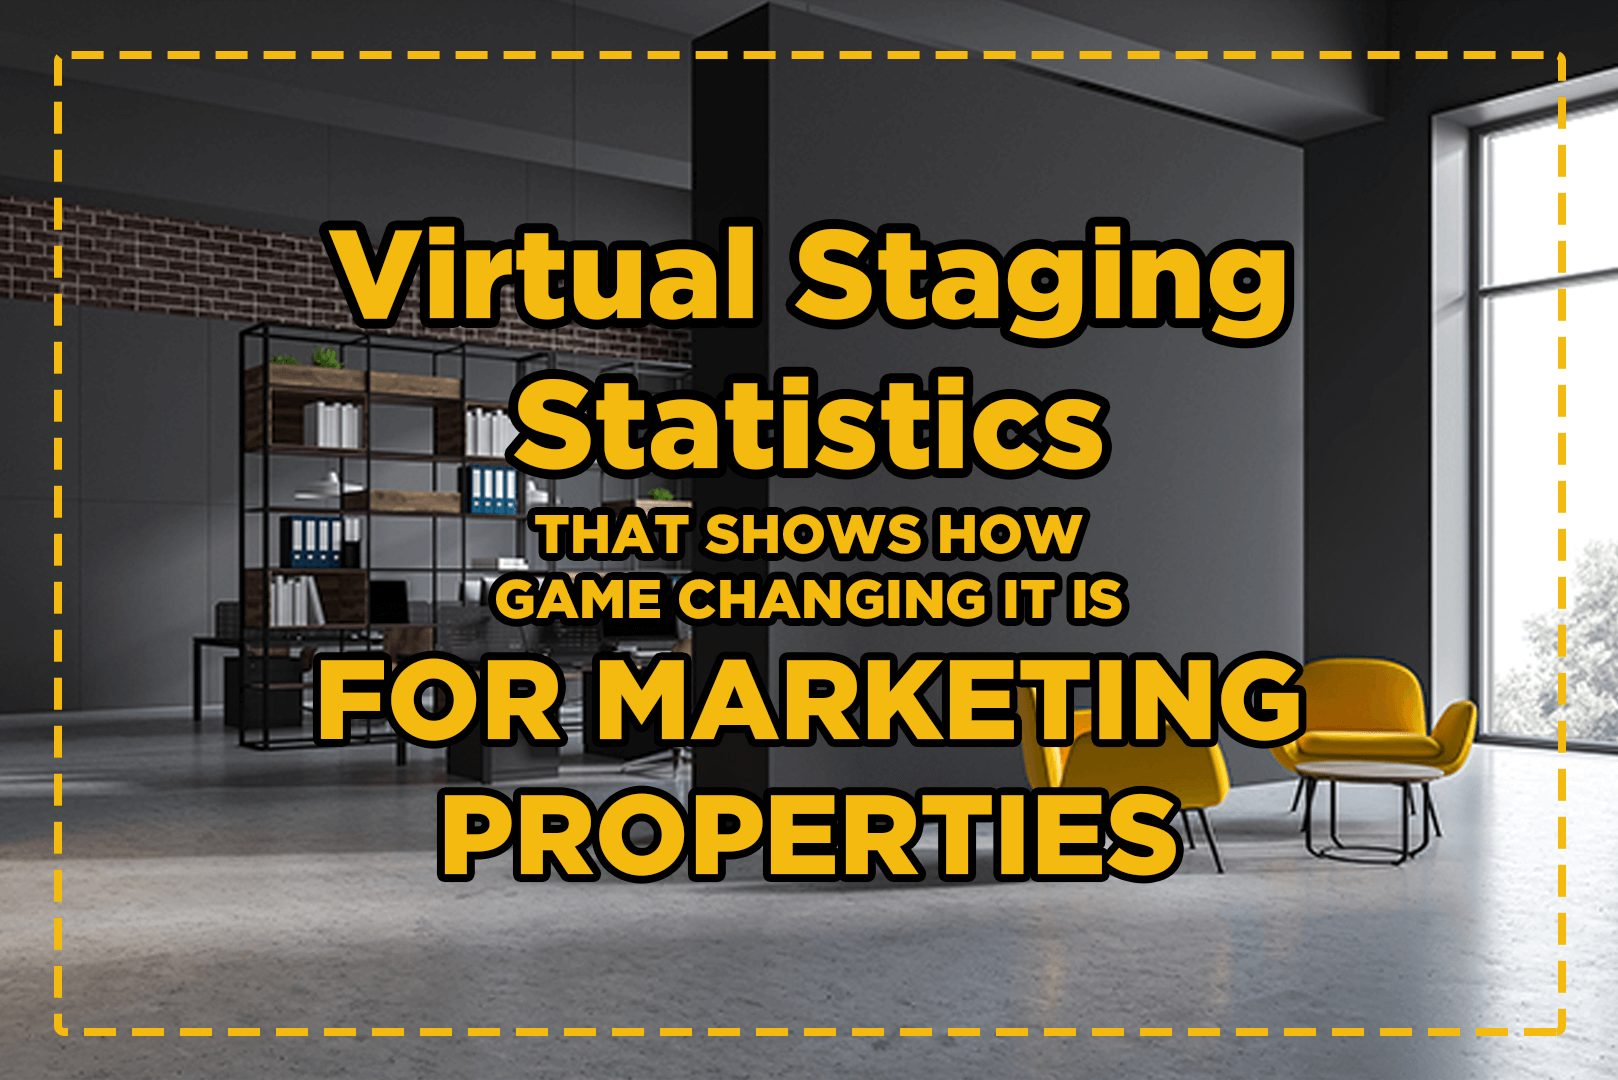 Virtual Staging Statistics That Shows How Game Changing It Is For Marketing Properties